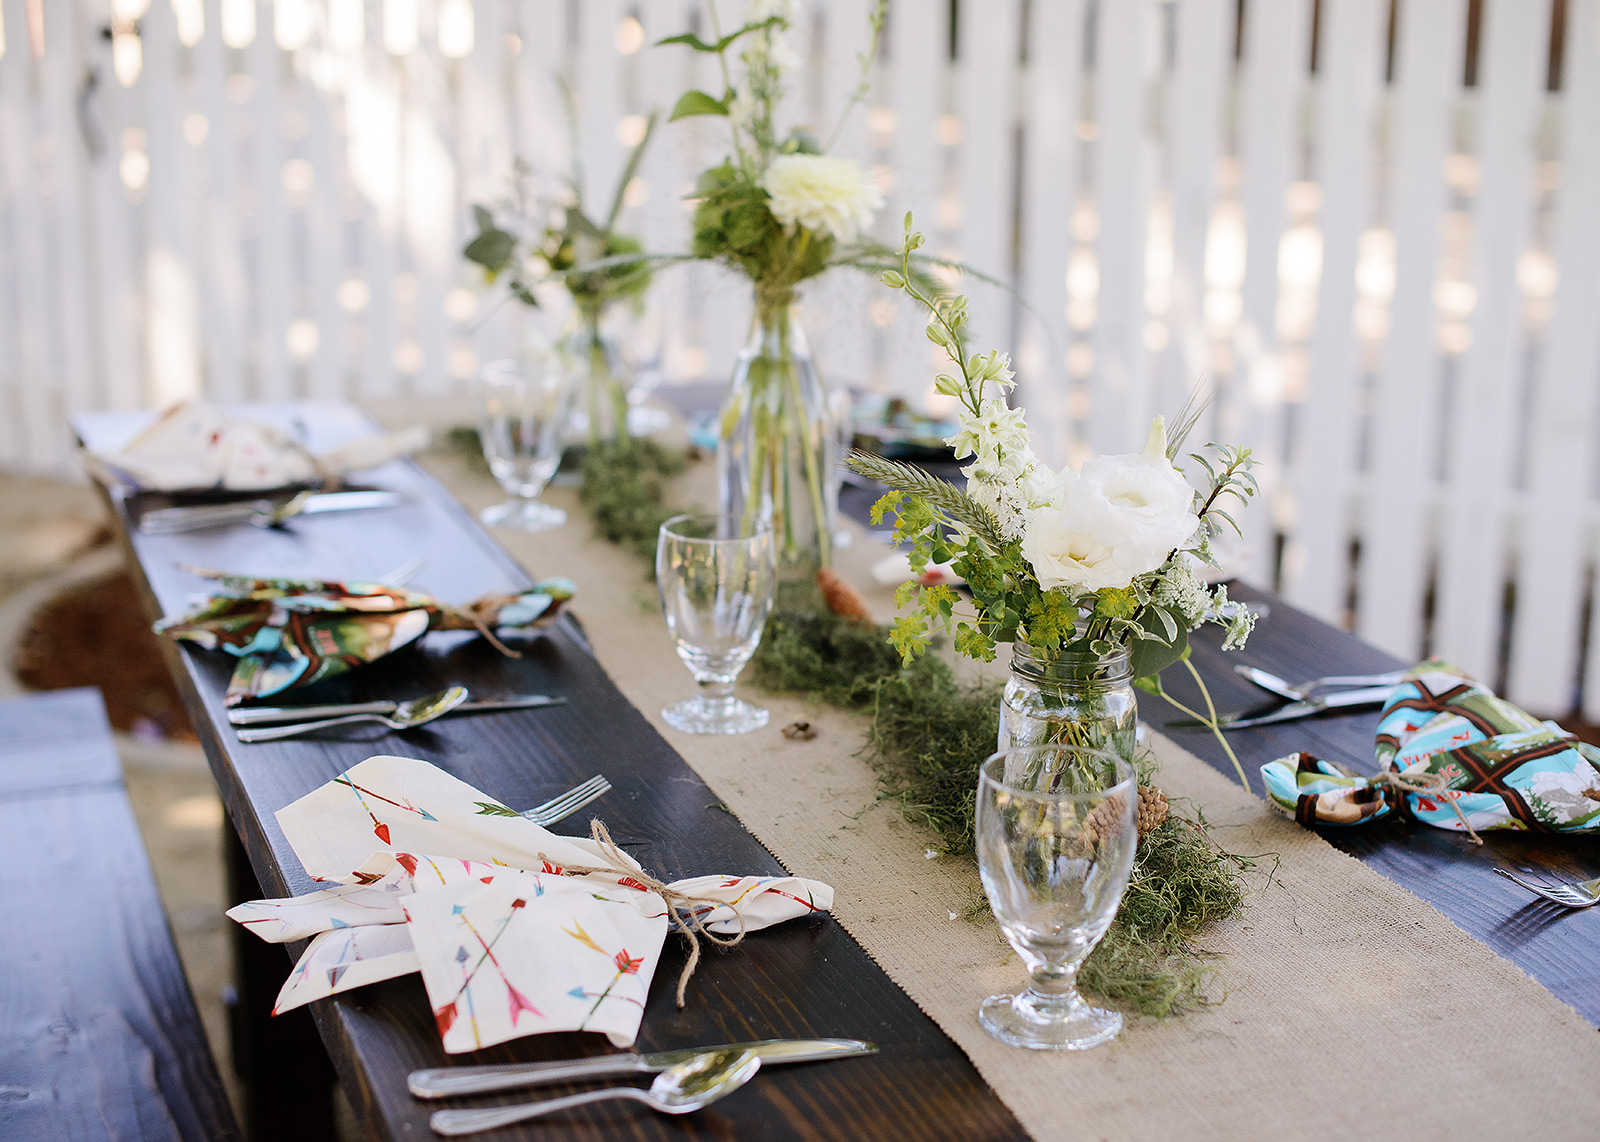 Summer Camp Rustic Table Setting